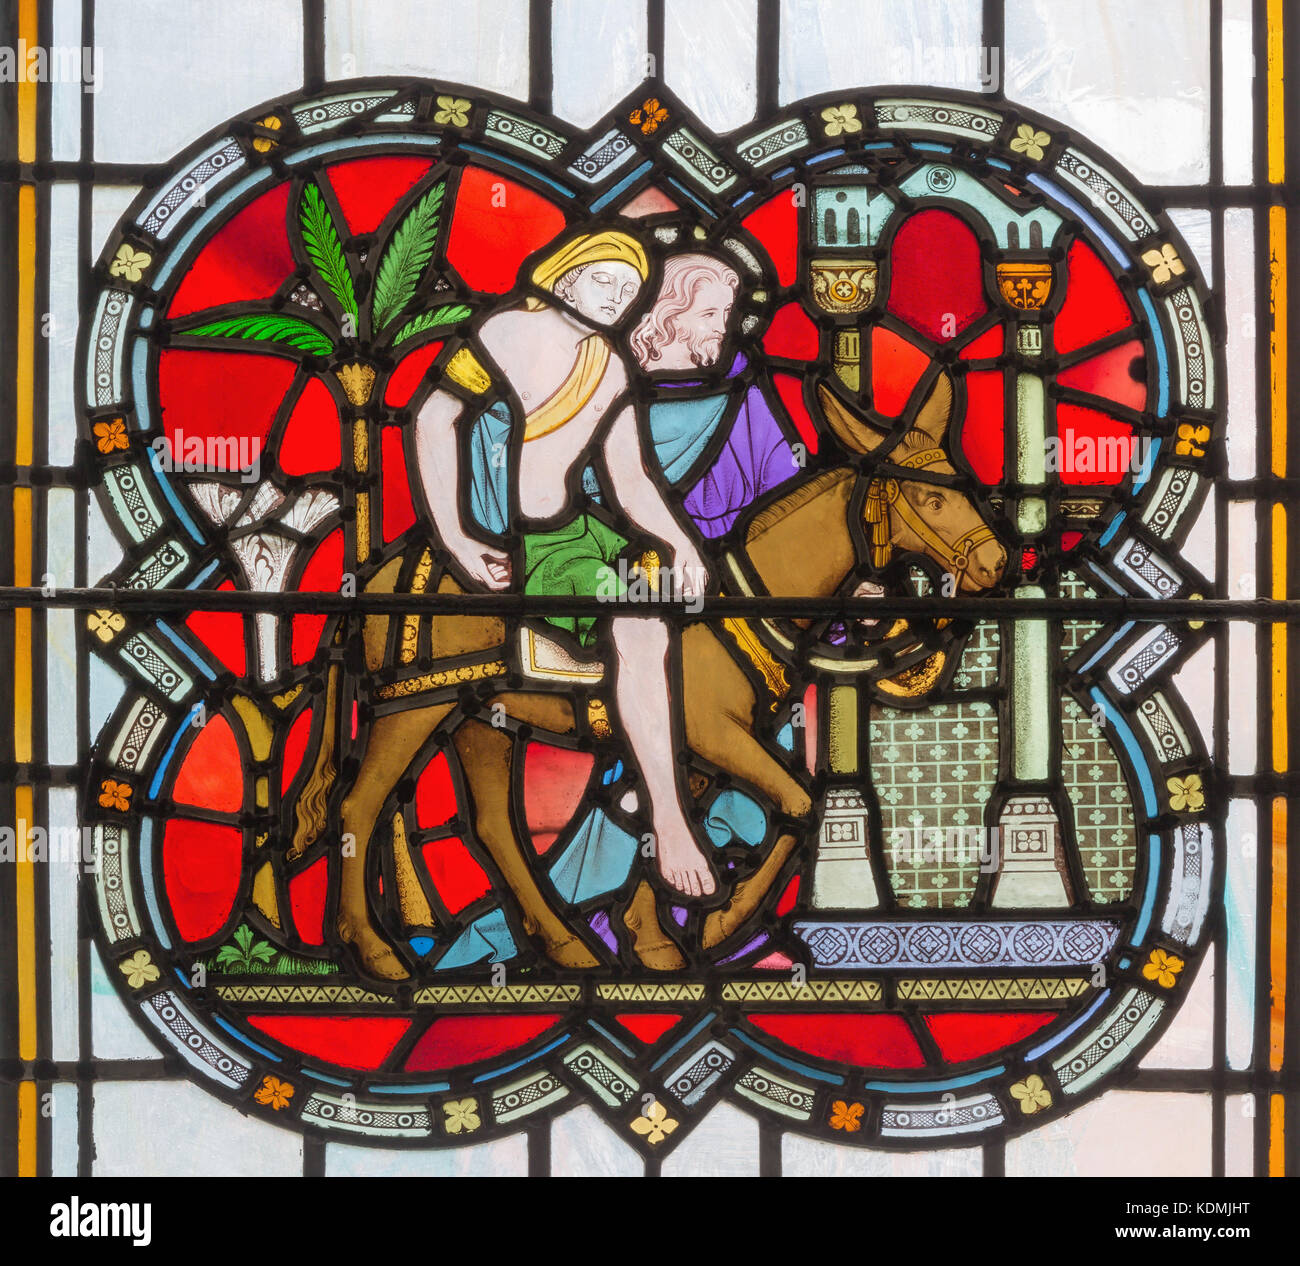 LONDON, GREAT BRITAIN - SEPTEMBER 14, 2017: The Parable of the Good Samaritan on the stained glass in the church - Stock Image